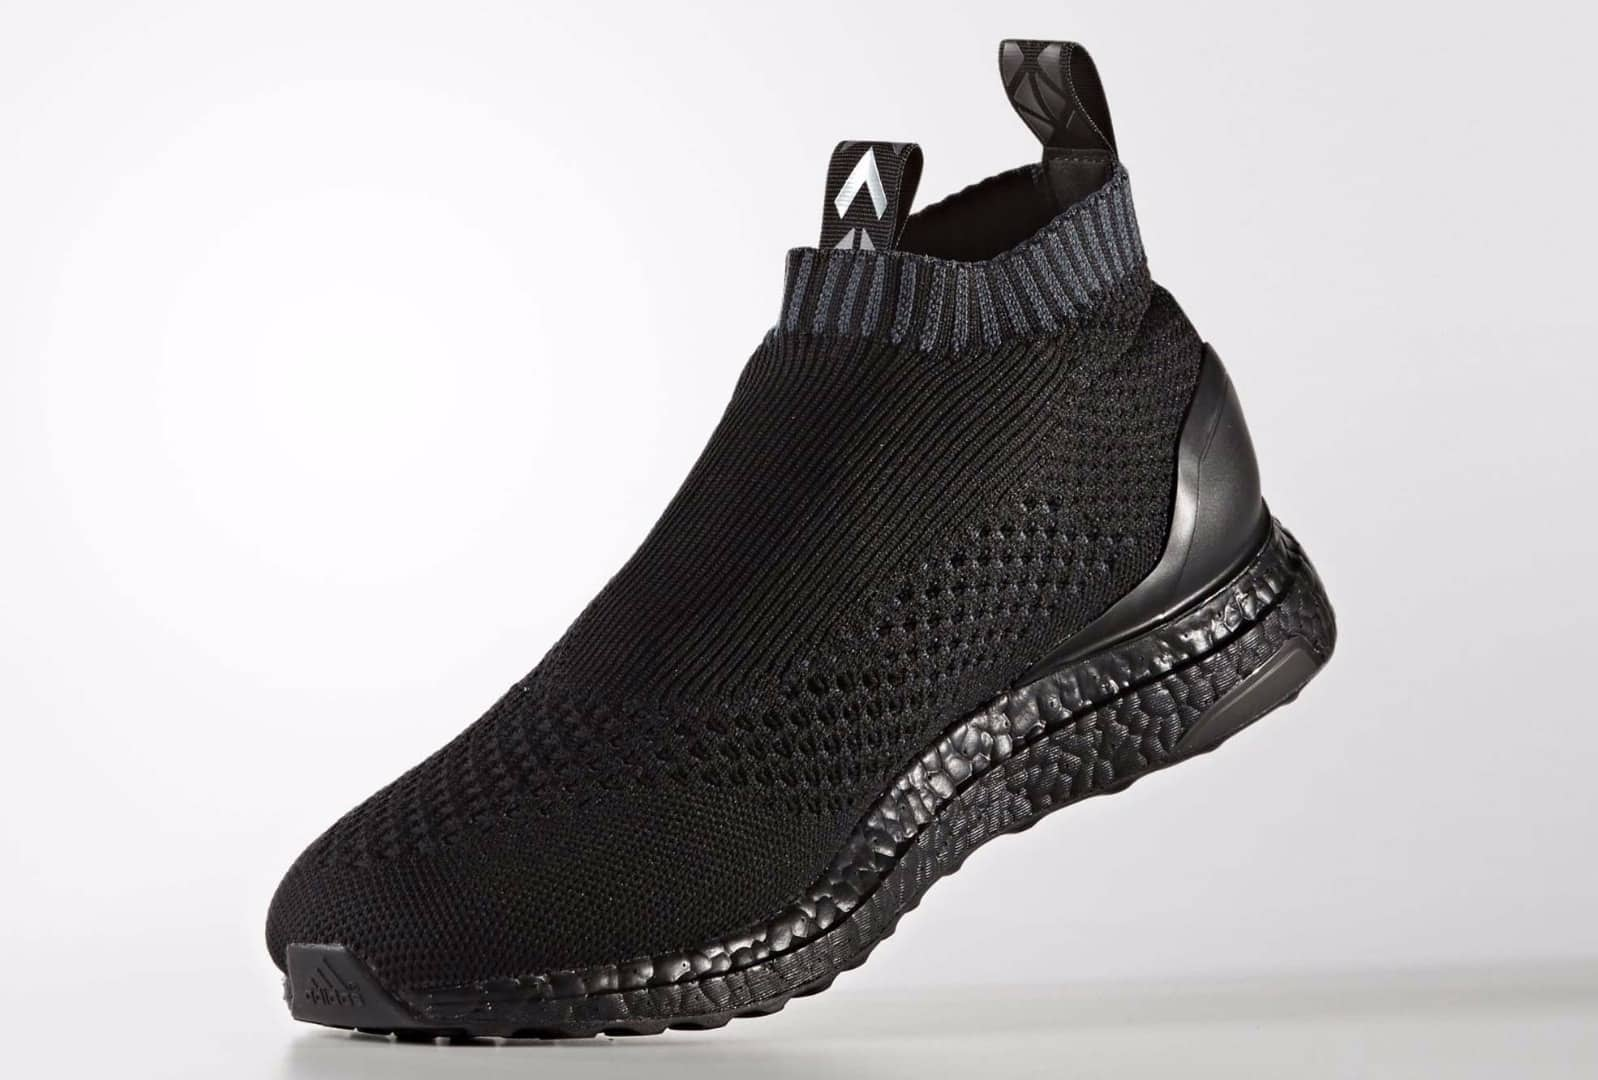 72fc557d72b81 ... italy sneakers adidas ace16 purecontrol ultra boost triple black 146ed  7777e